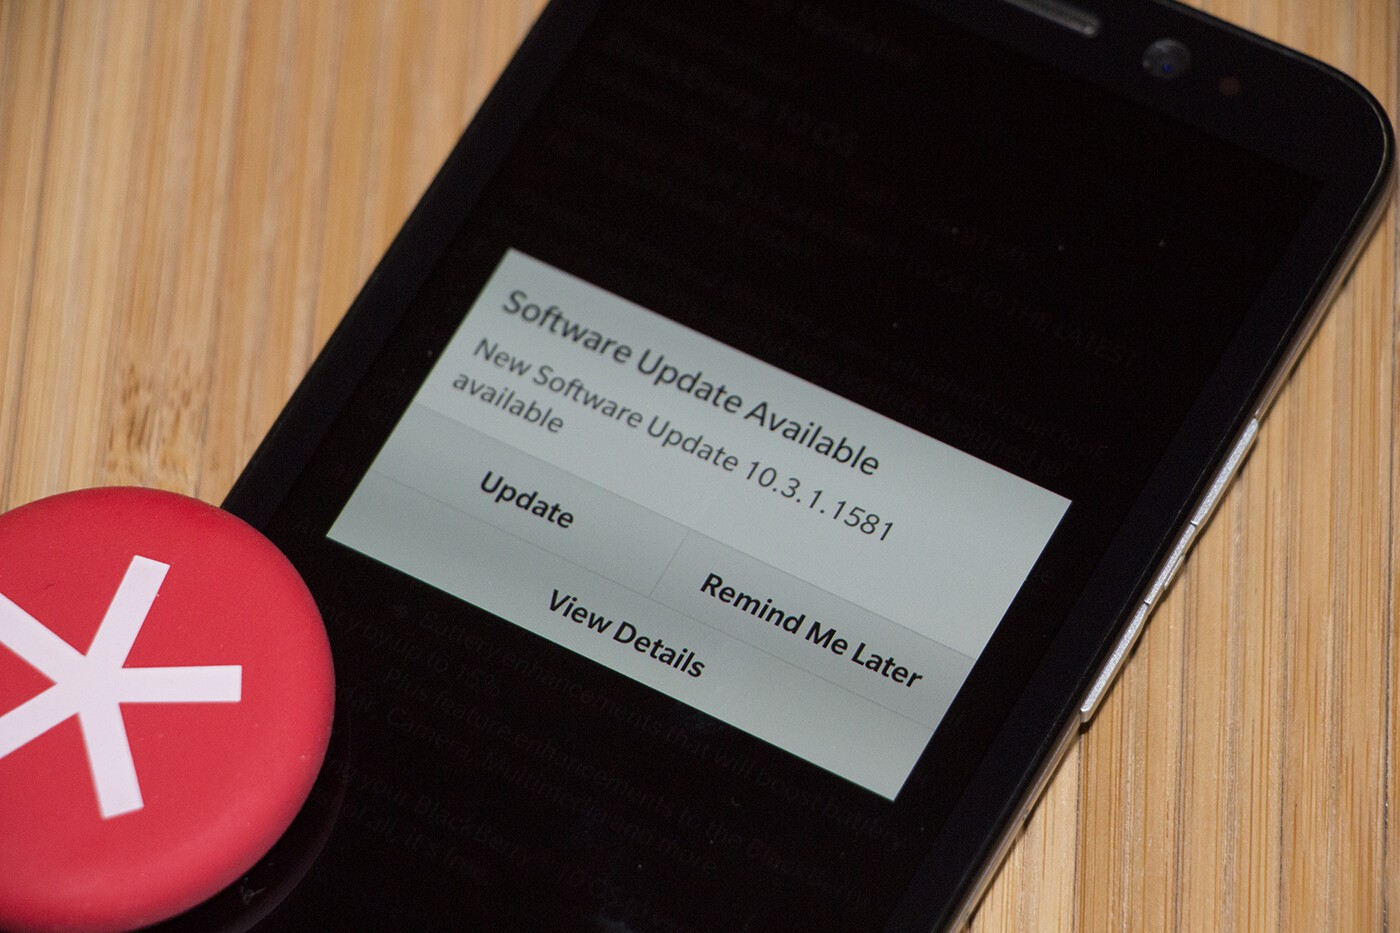 Rogers BlackBerry Z30 and Q5 OS 10.3.1 updates now available